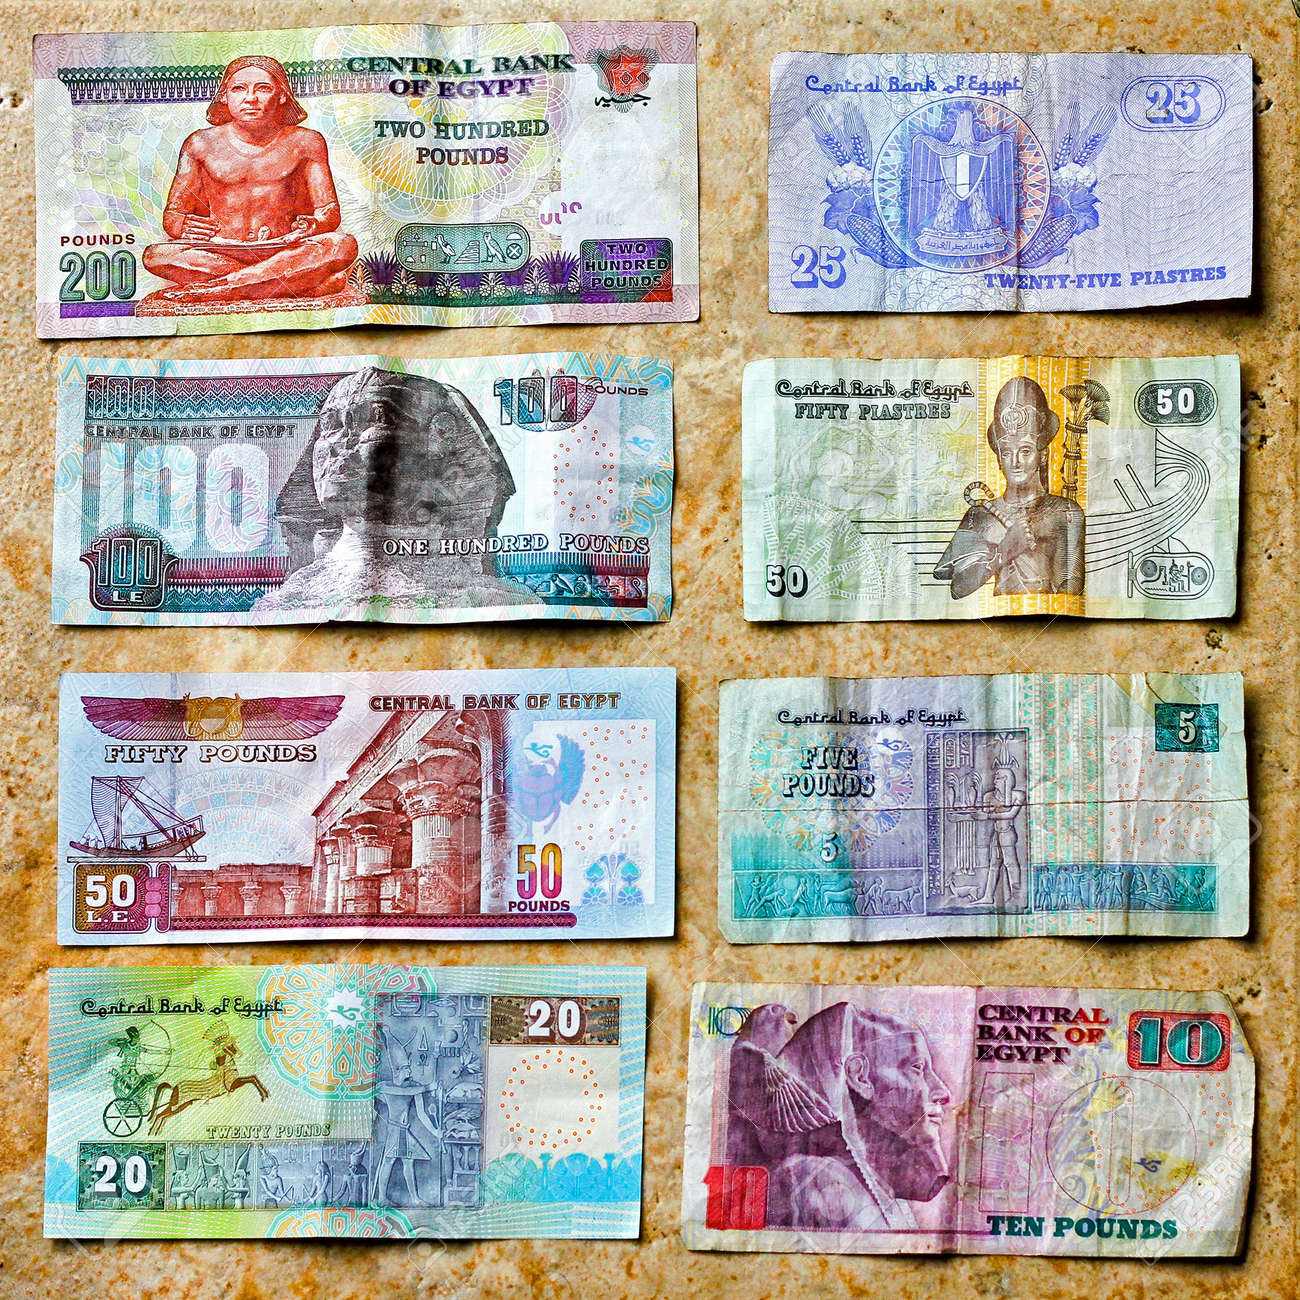 What is the currency in Egypt